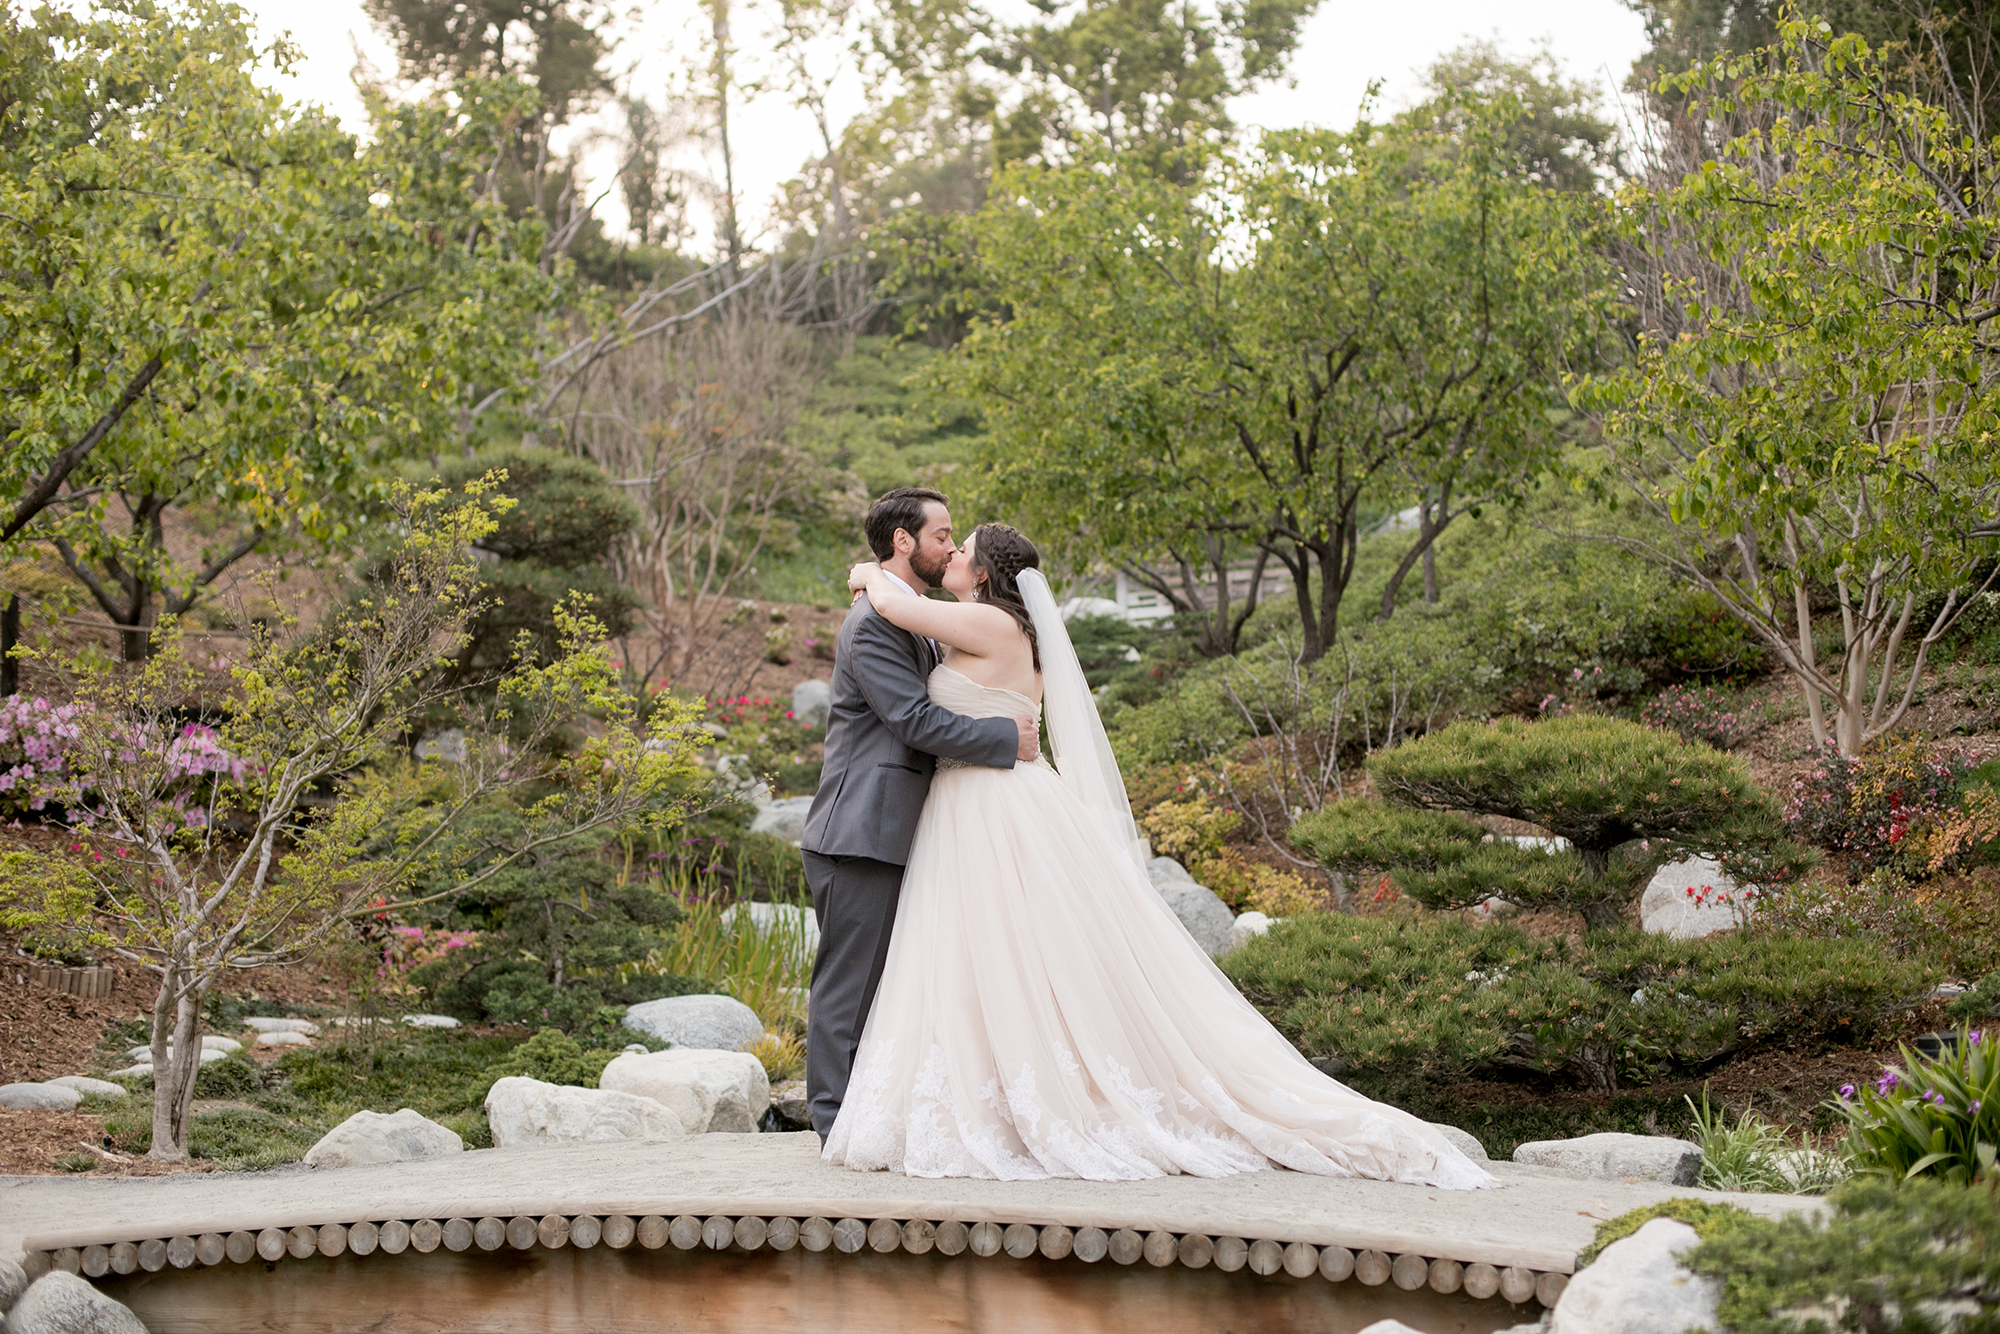 Wedding Photography Packages - San Diego, CA - Japanese Friendship Garden - Bride and groom kissing a small bridge overlooking the garden.